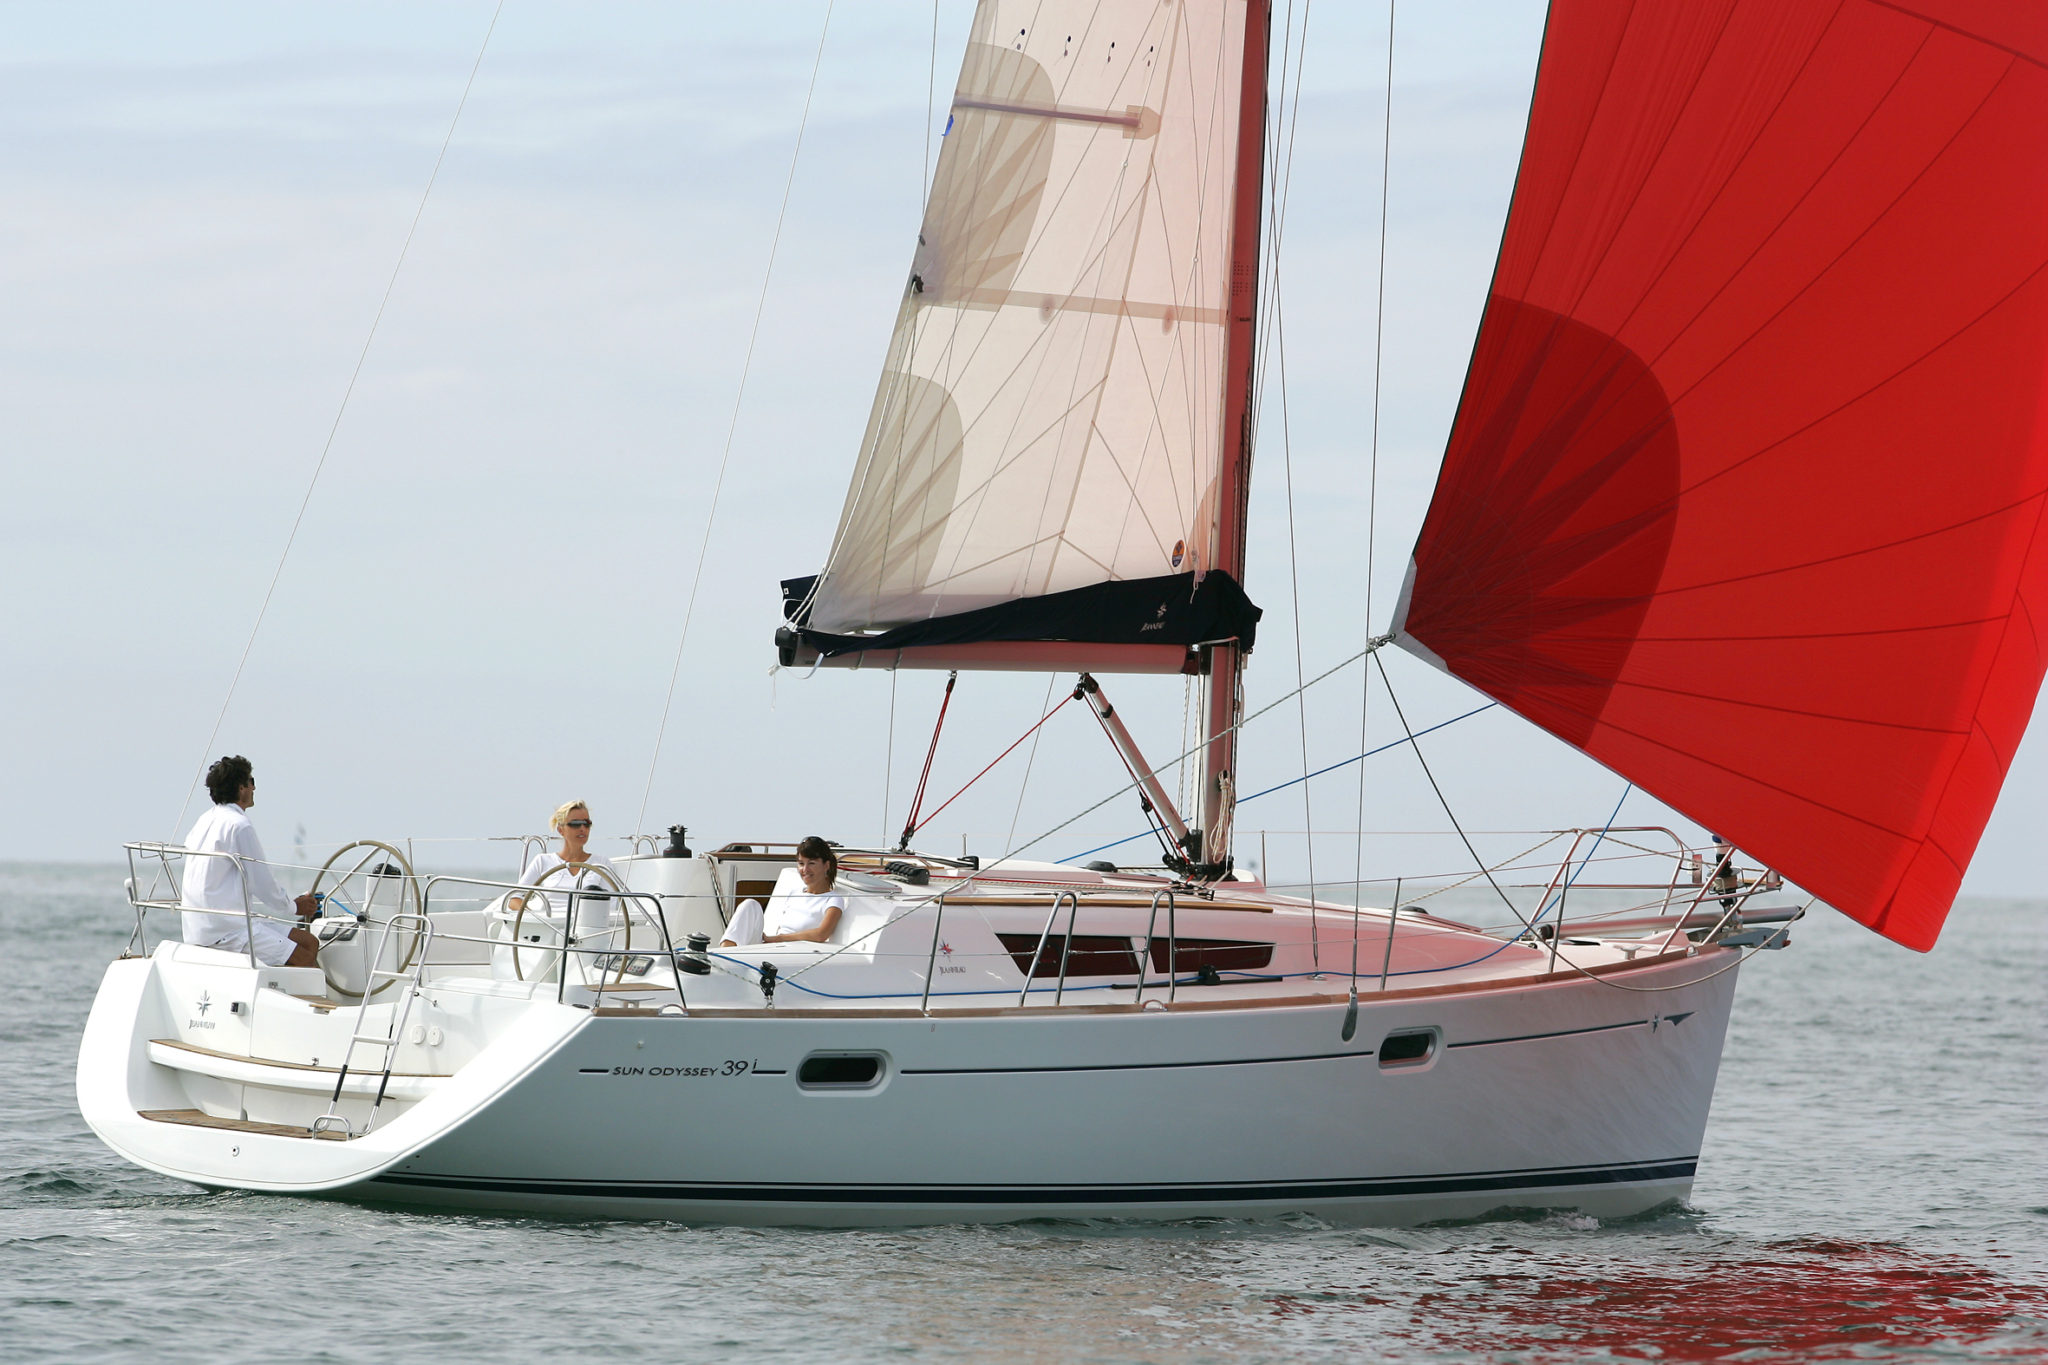 Red Sail Boat - Boat Registration Services Ireland